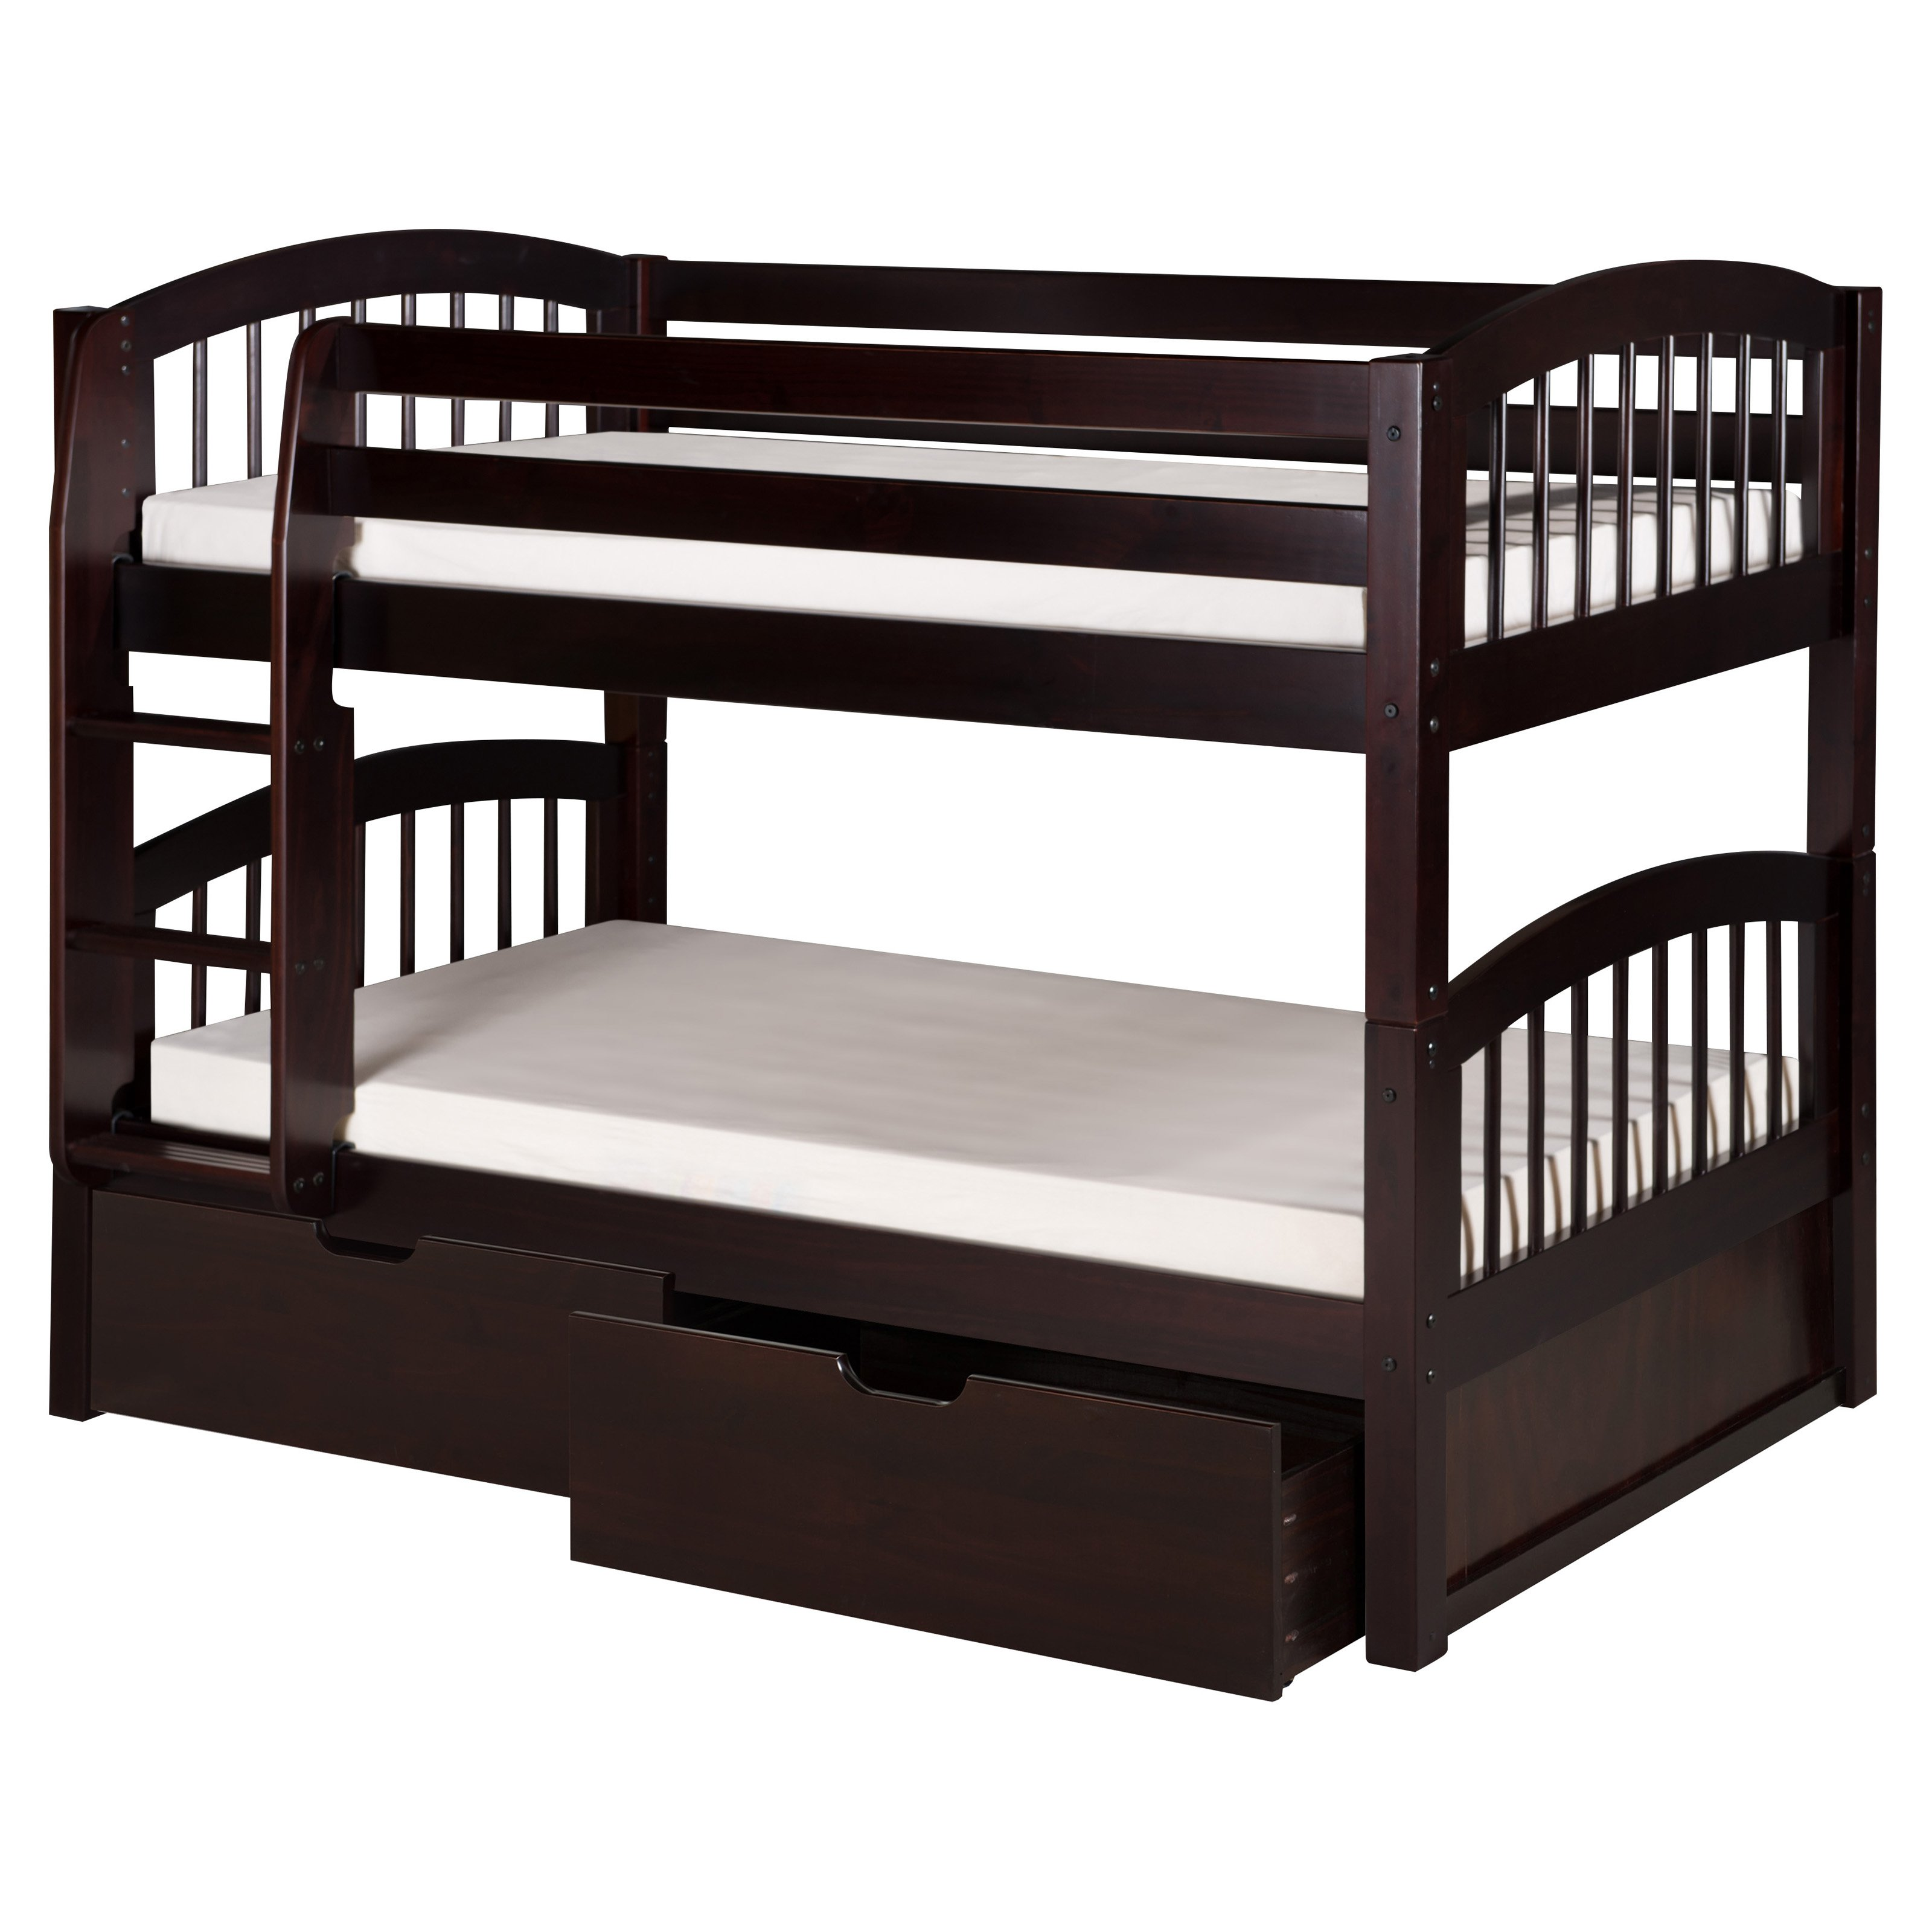 bedz king stairway bunk bed twin over twin and twin trundle in  - bedz king stairway bunk bed twin over twin and twin trundle in cappuccino walmartcom